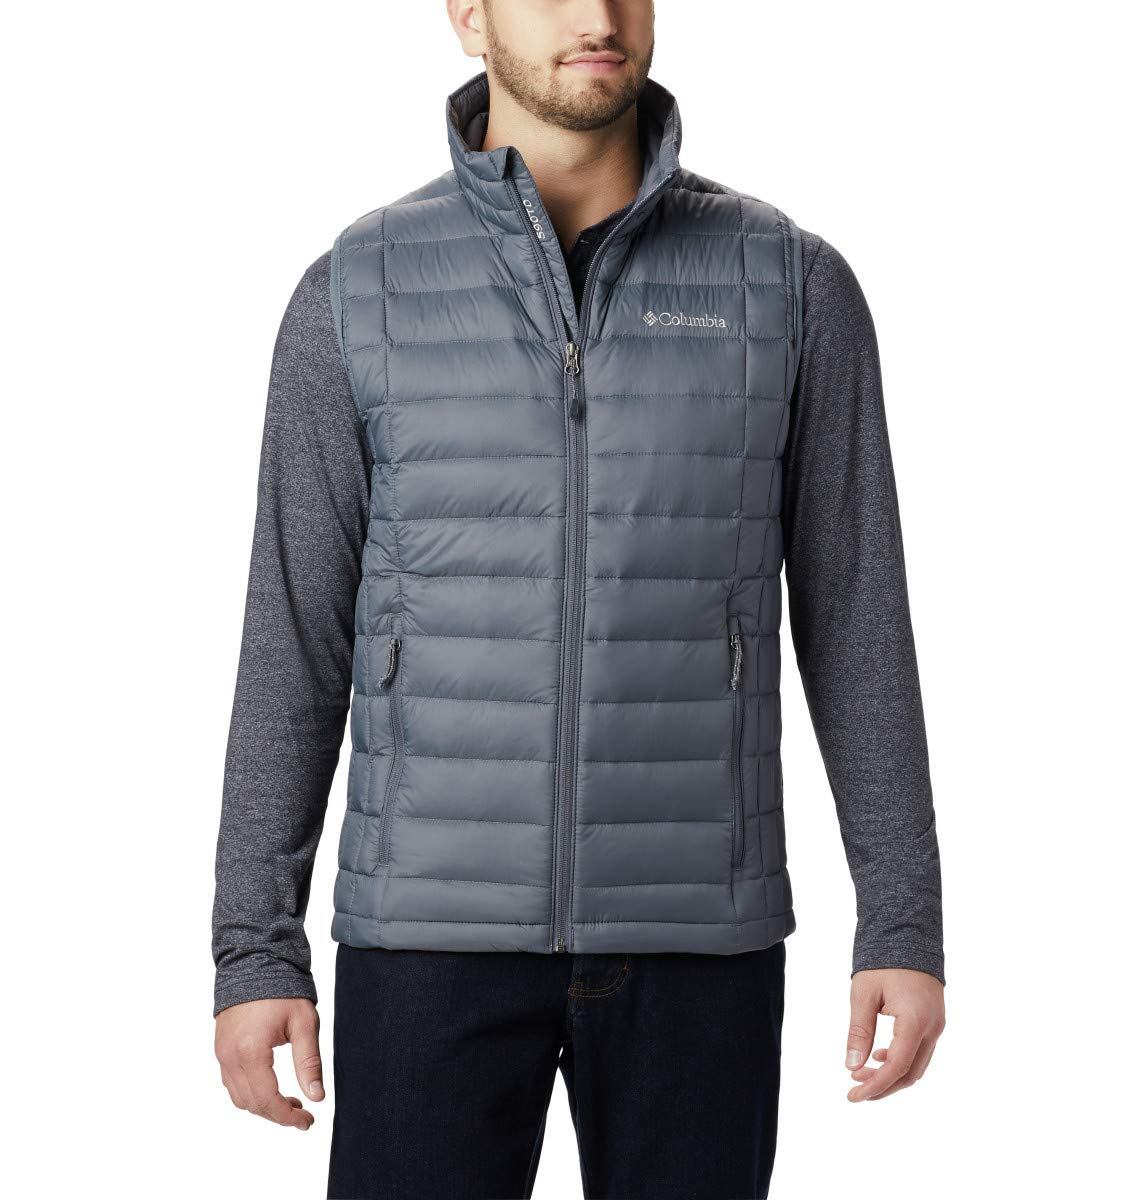 Columbia Men's Voodoo Falls 590 TurboDown Vest, Graphite, Medium by Columbia